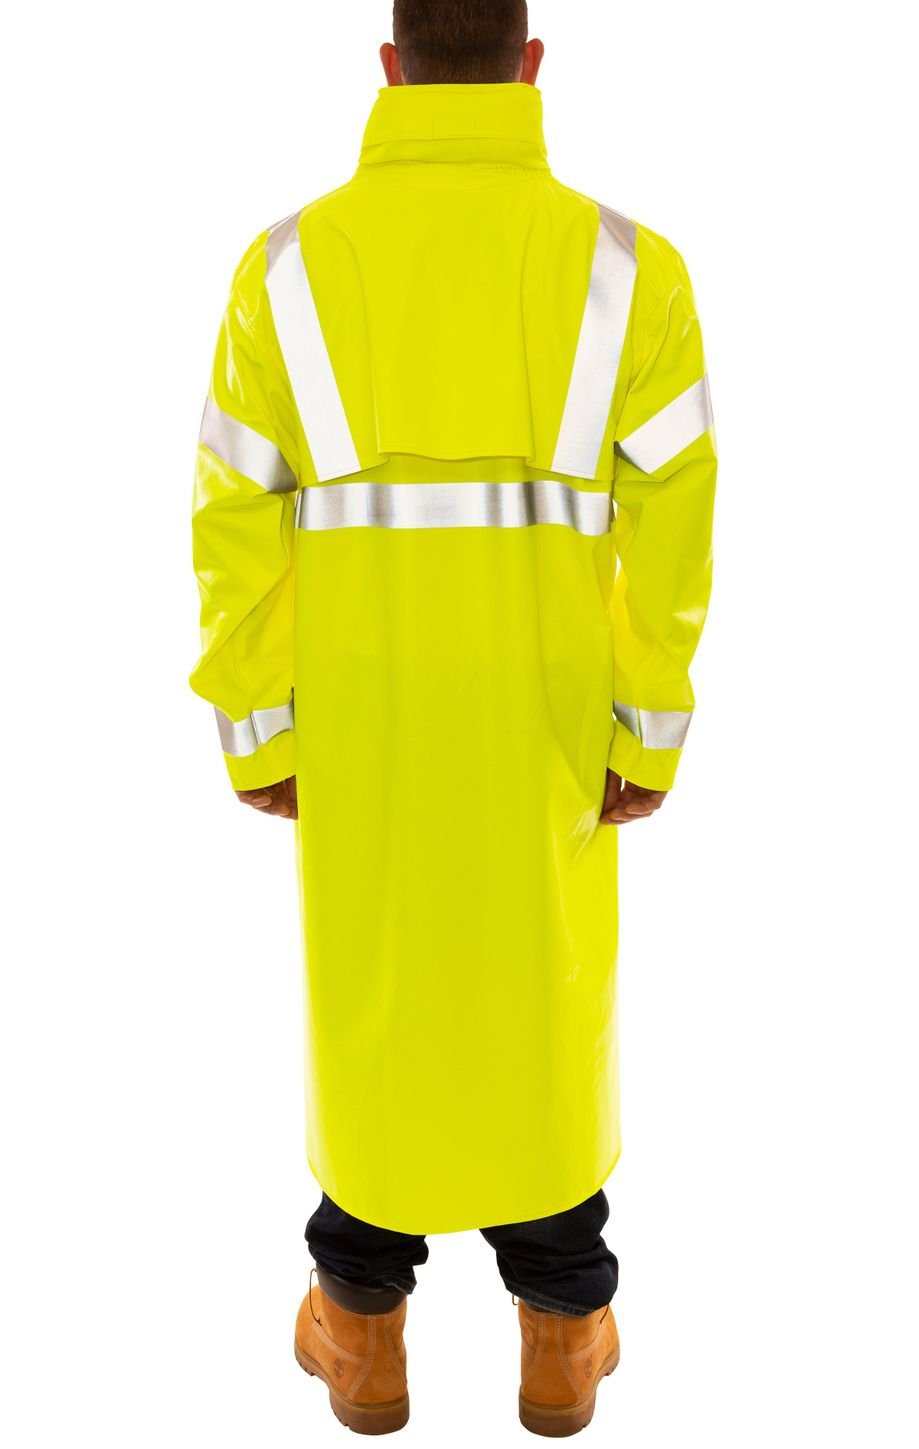 tingley-eclipse-arc-flash-and-fire-resistant-rain-coat-pvc-on-nomex-chemical-resistant-class-3-hi-vis-fluorescent-yellow-green-back.jpg